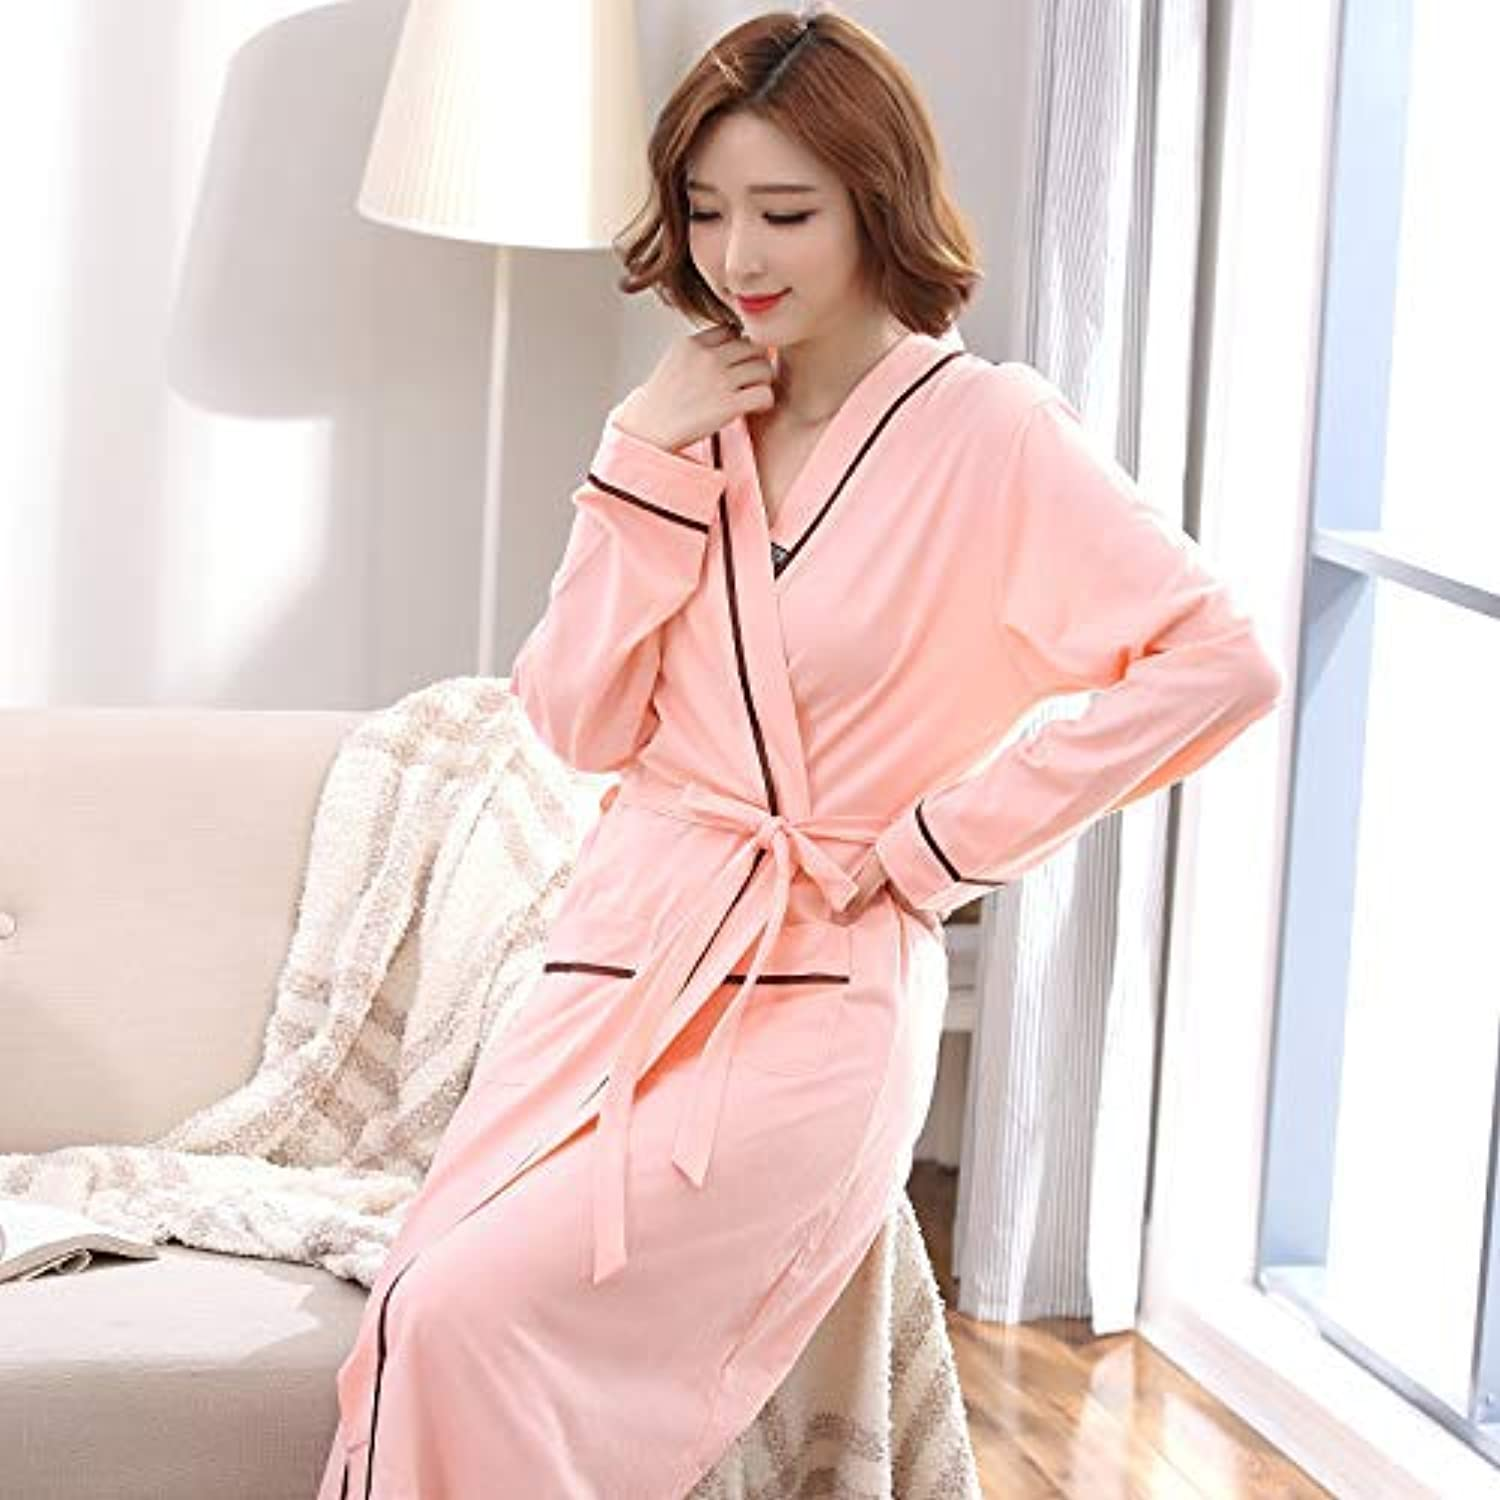 DALAI Nightgown Female Autumn Cotton LongSleeved Long Bathrobes Hotel Beauty Salon with Bathrobes Autumn and Winter Home Service (color   Pink, Size   XXXL) (color   Pink, Size   XXXL)